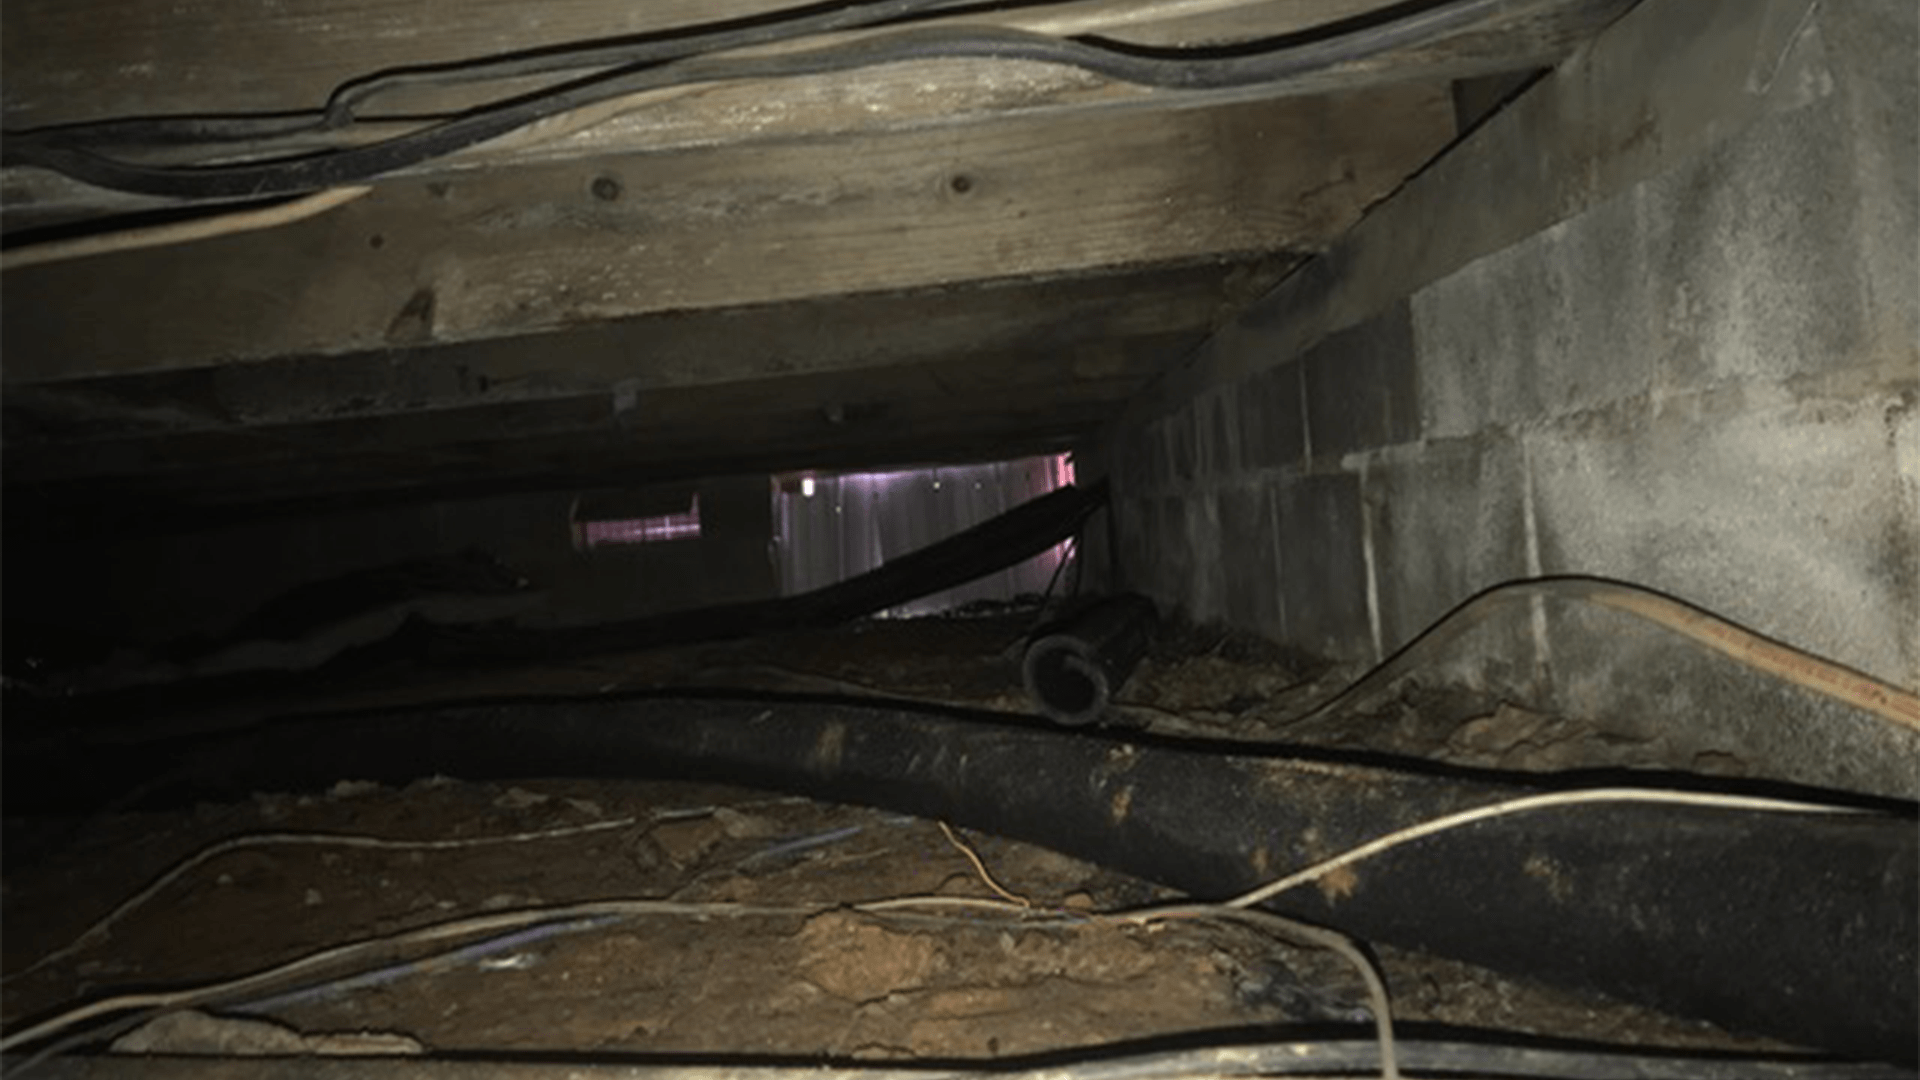 Mold on joists in crawlspace